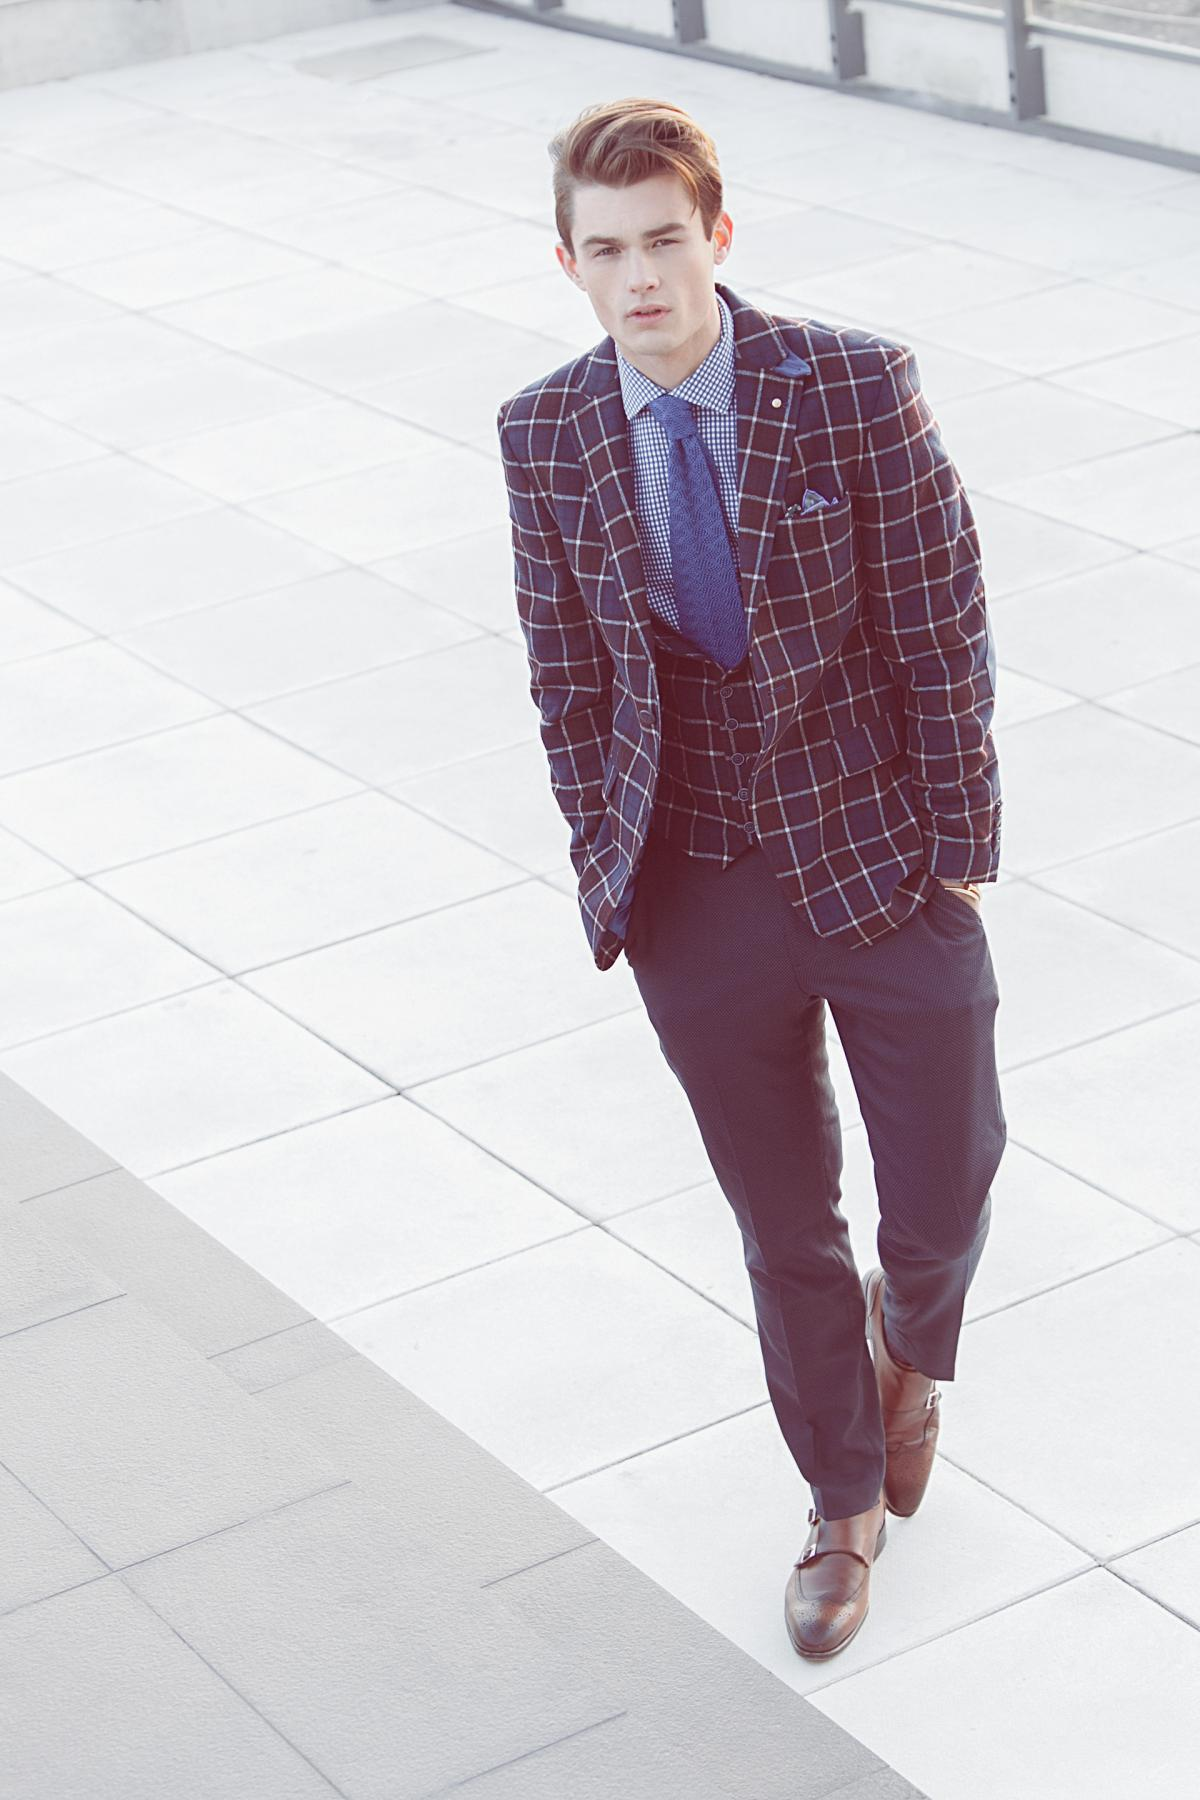 Win-win combination of dark squared jacket and classic plain pants